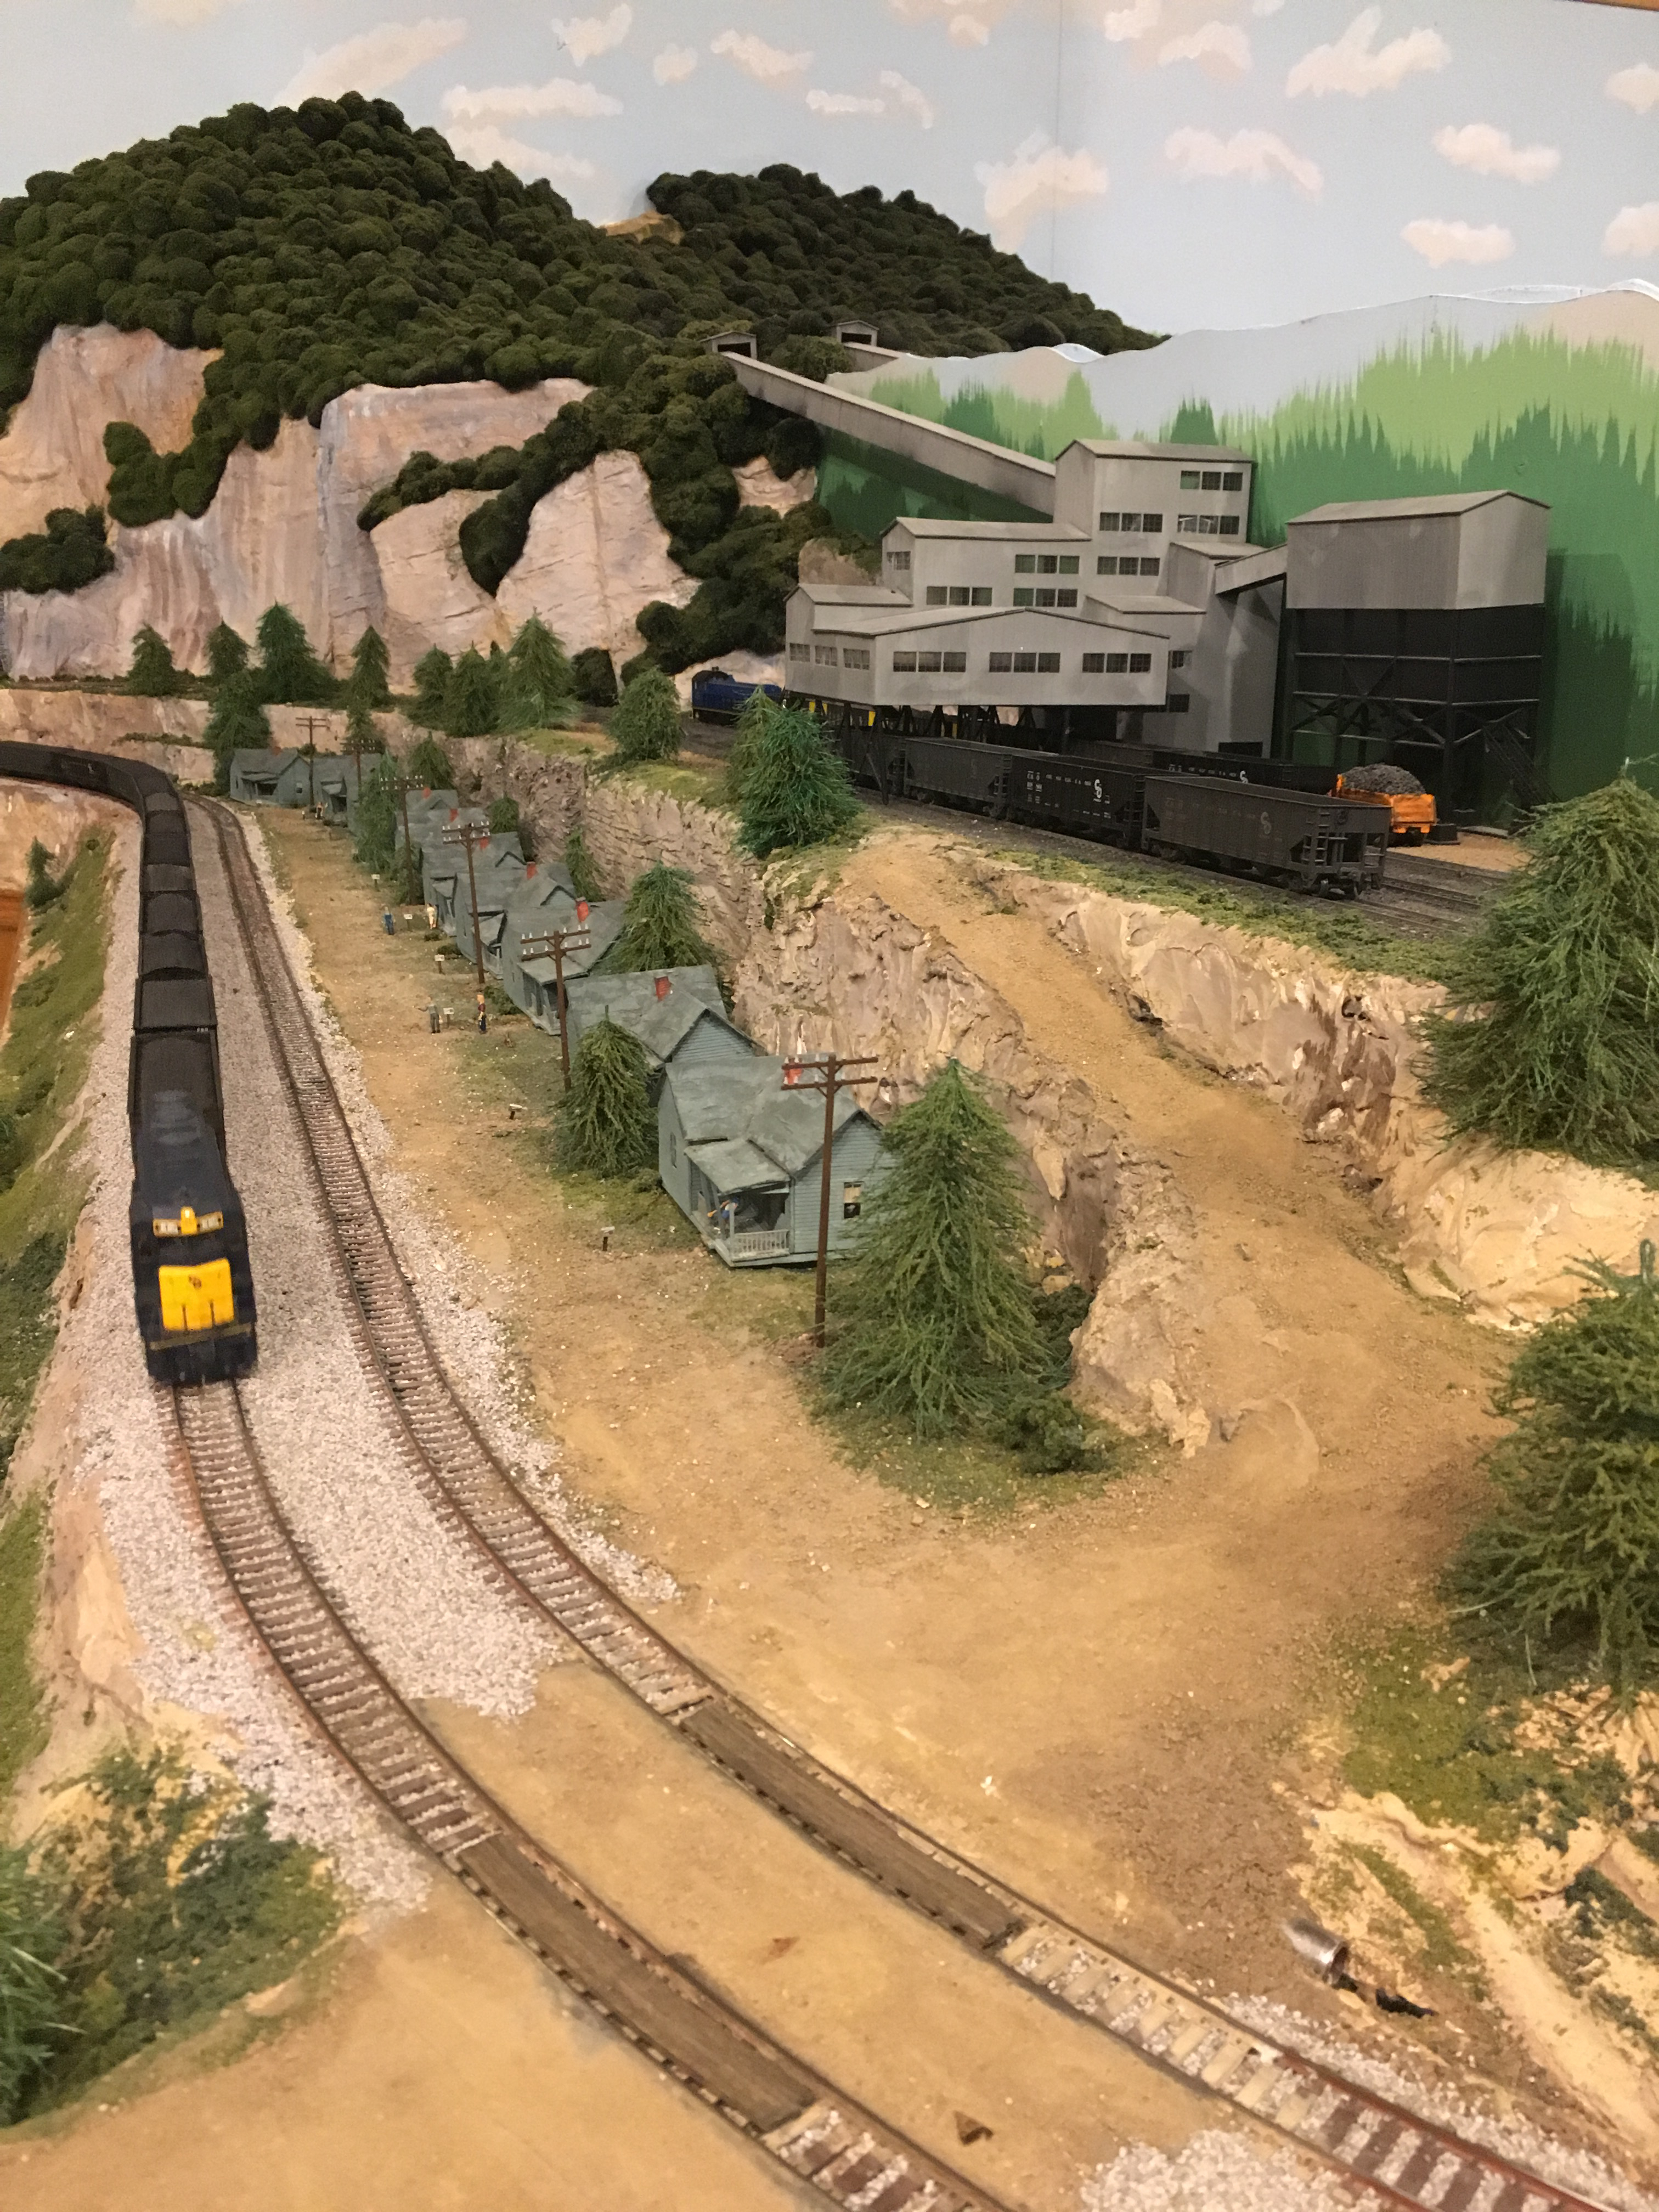 Coal mines, coal company towns, and railroads were built in close proximity to each other so that the coal could be easily mined and transported across the country.